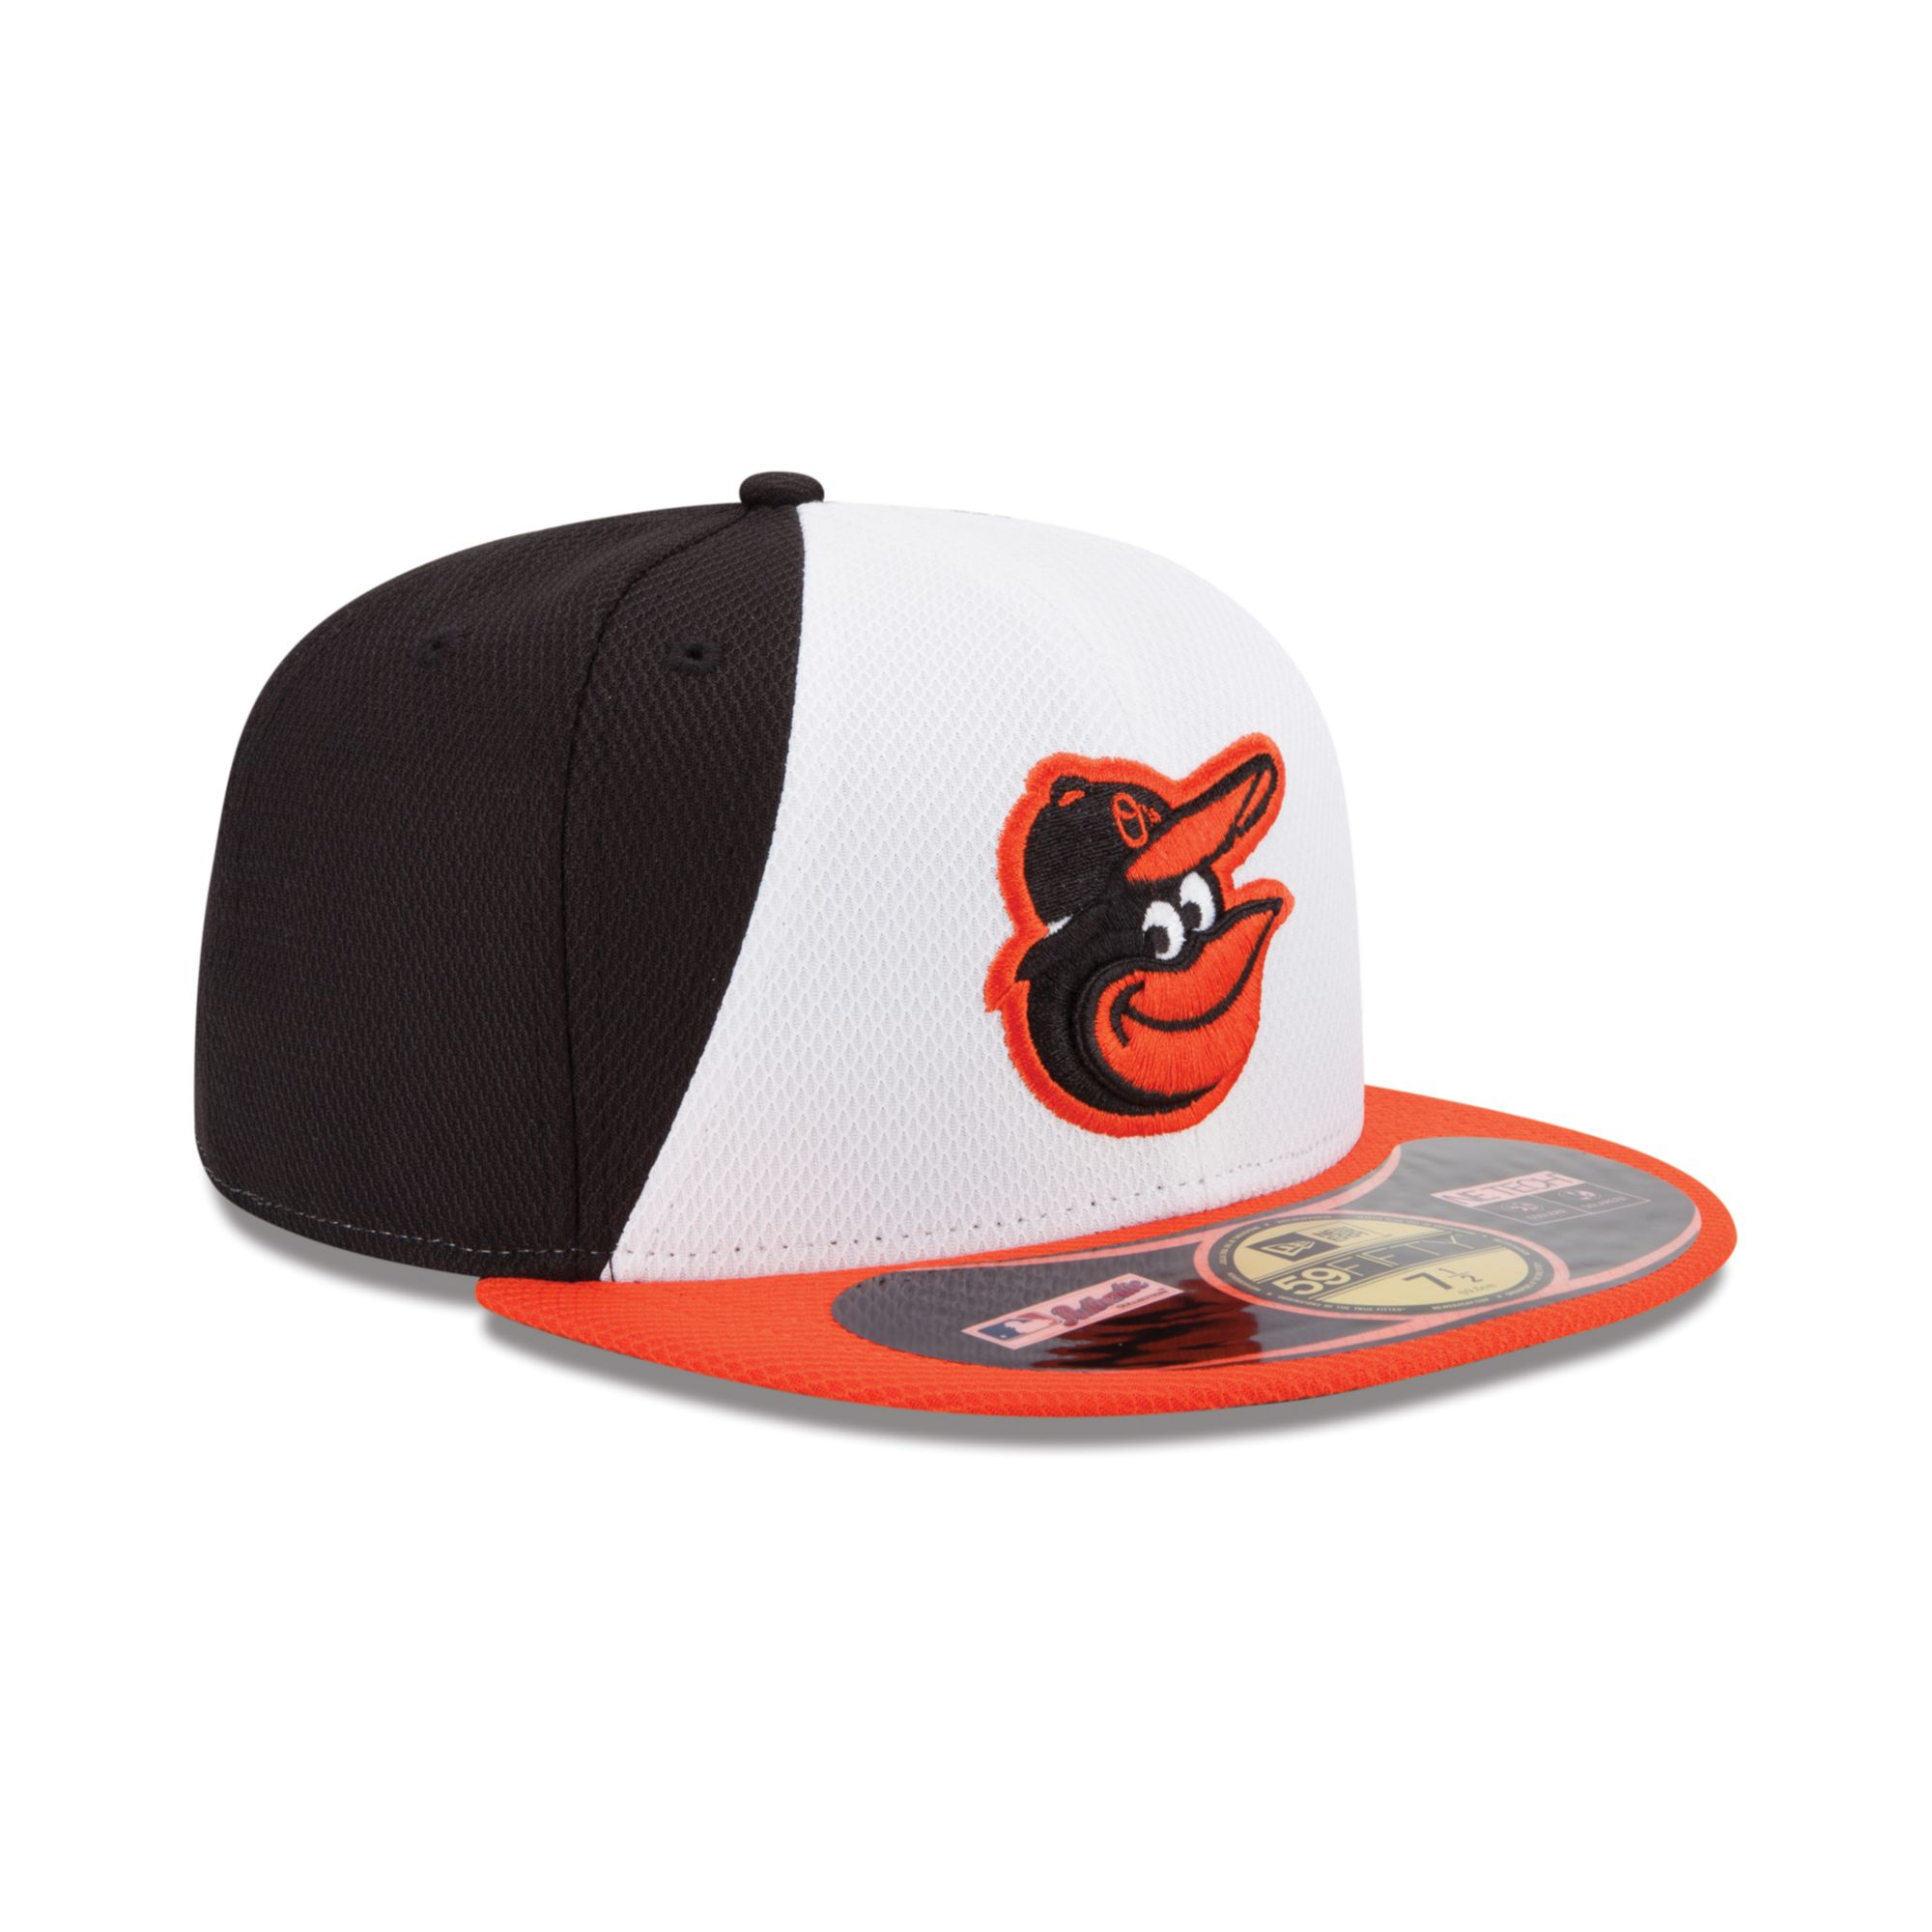 9723b3f7216e0c uk baltimore orioles special edition all star game hats barely  distinguishable from regular hats baltimore sun 06dfc c6f6a; where to buy  lyst ktz baltimore ...